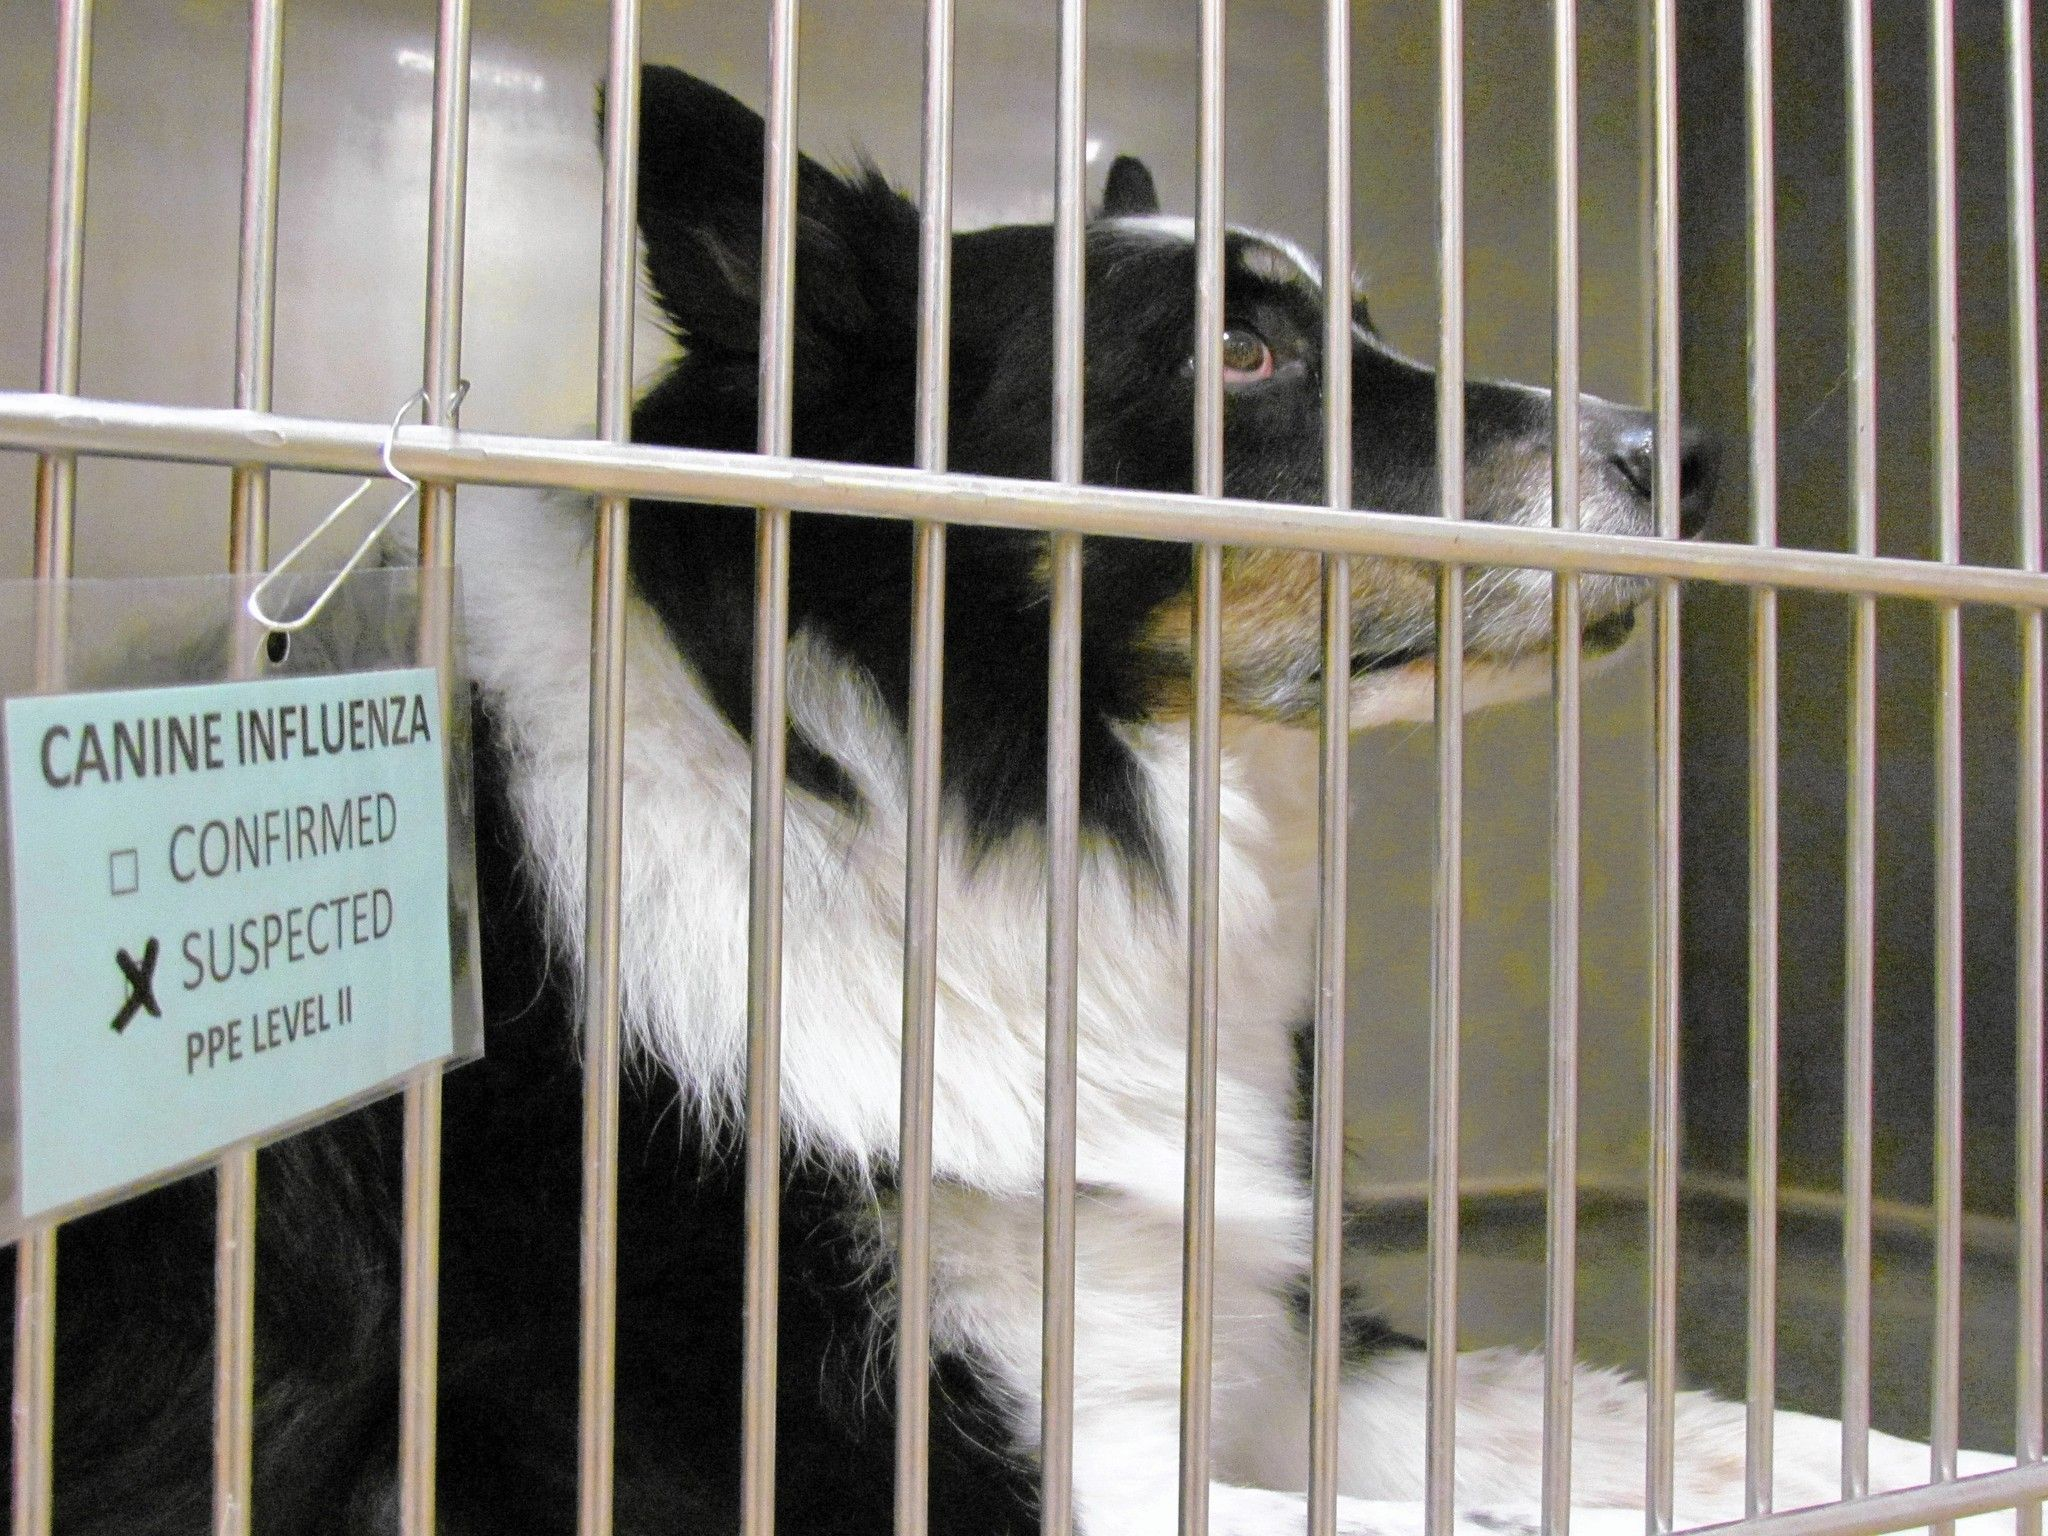 Animal hospital on canine flu: 'Never seen this kind of outbreak'  VCA Aurora Animal Hospital has a sign at its main entrance alerting dog owners of a canine influenza outbreak that has veterinarians taking precautions to prevent the spread of the highly contagious disease.  http://www.chicagotribune.com/suburbs/aurora-beacon-news/news/ct-abn-dog-flu-st-0406-20150403-story.html